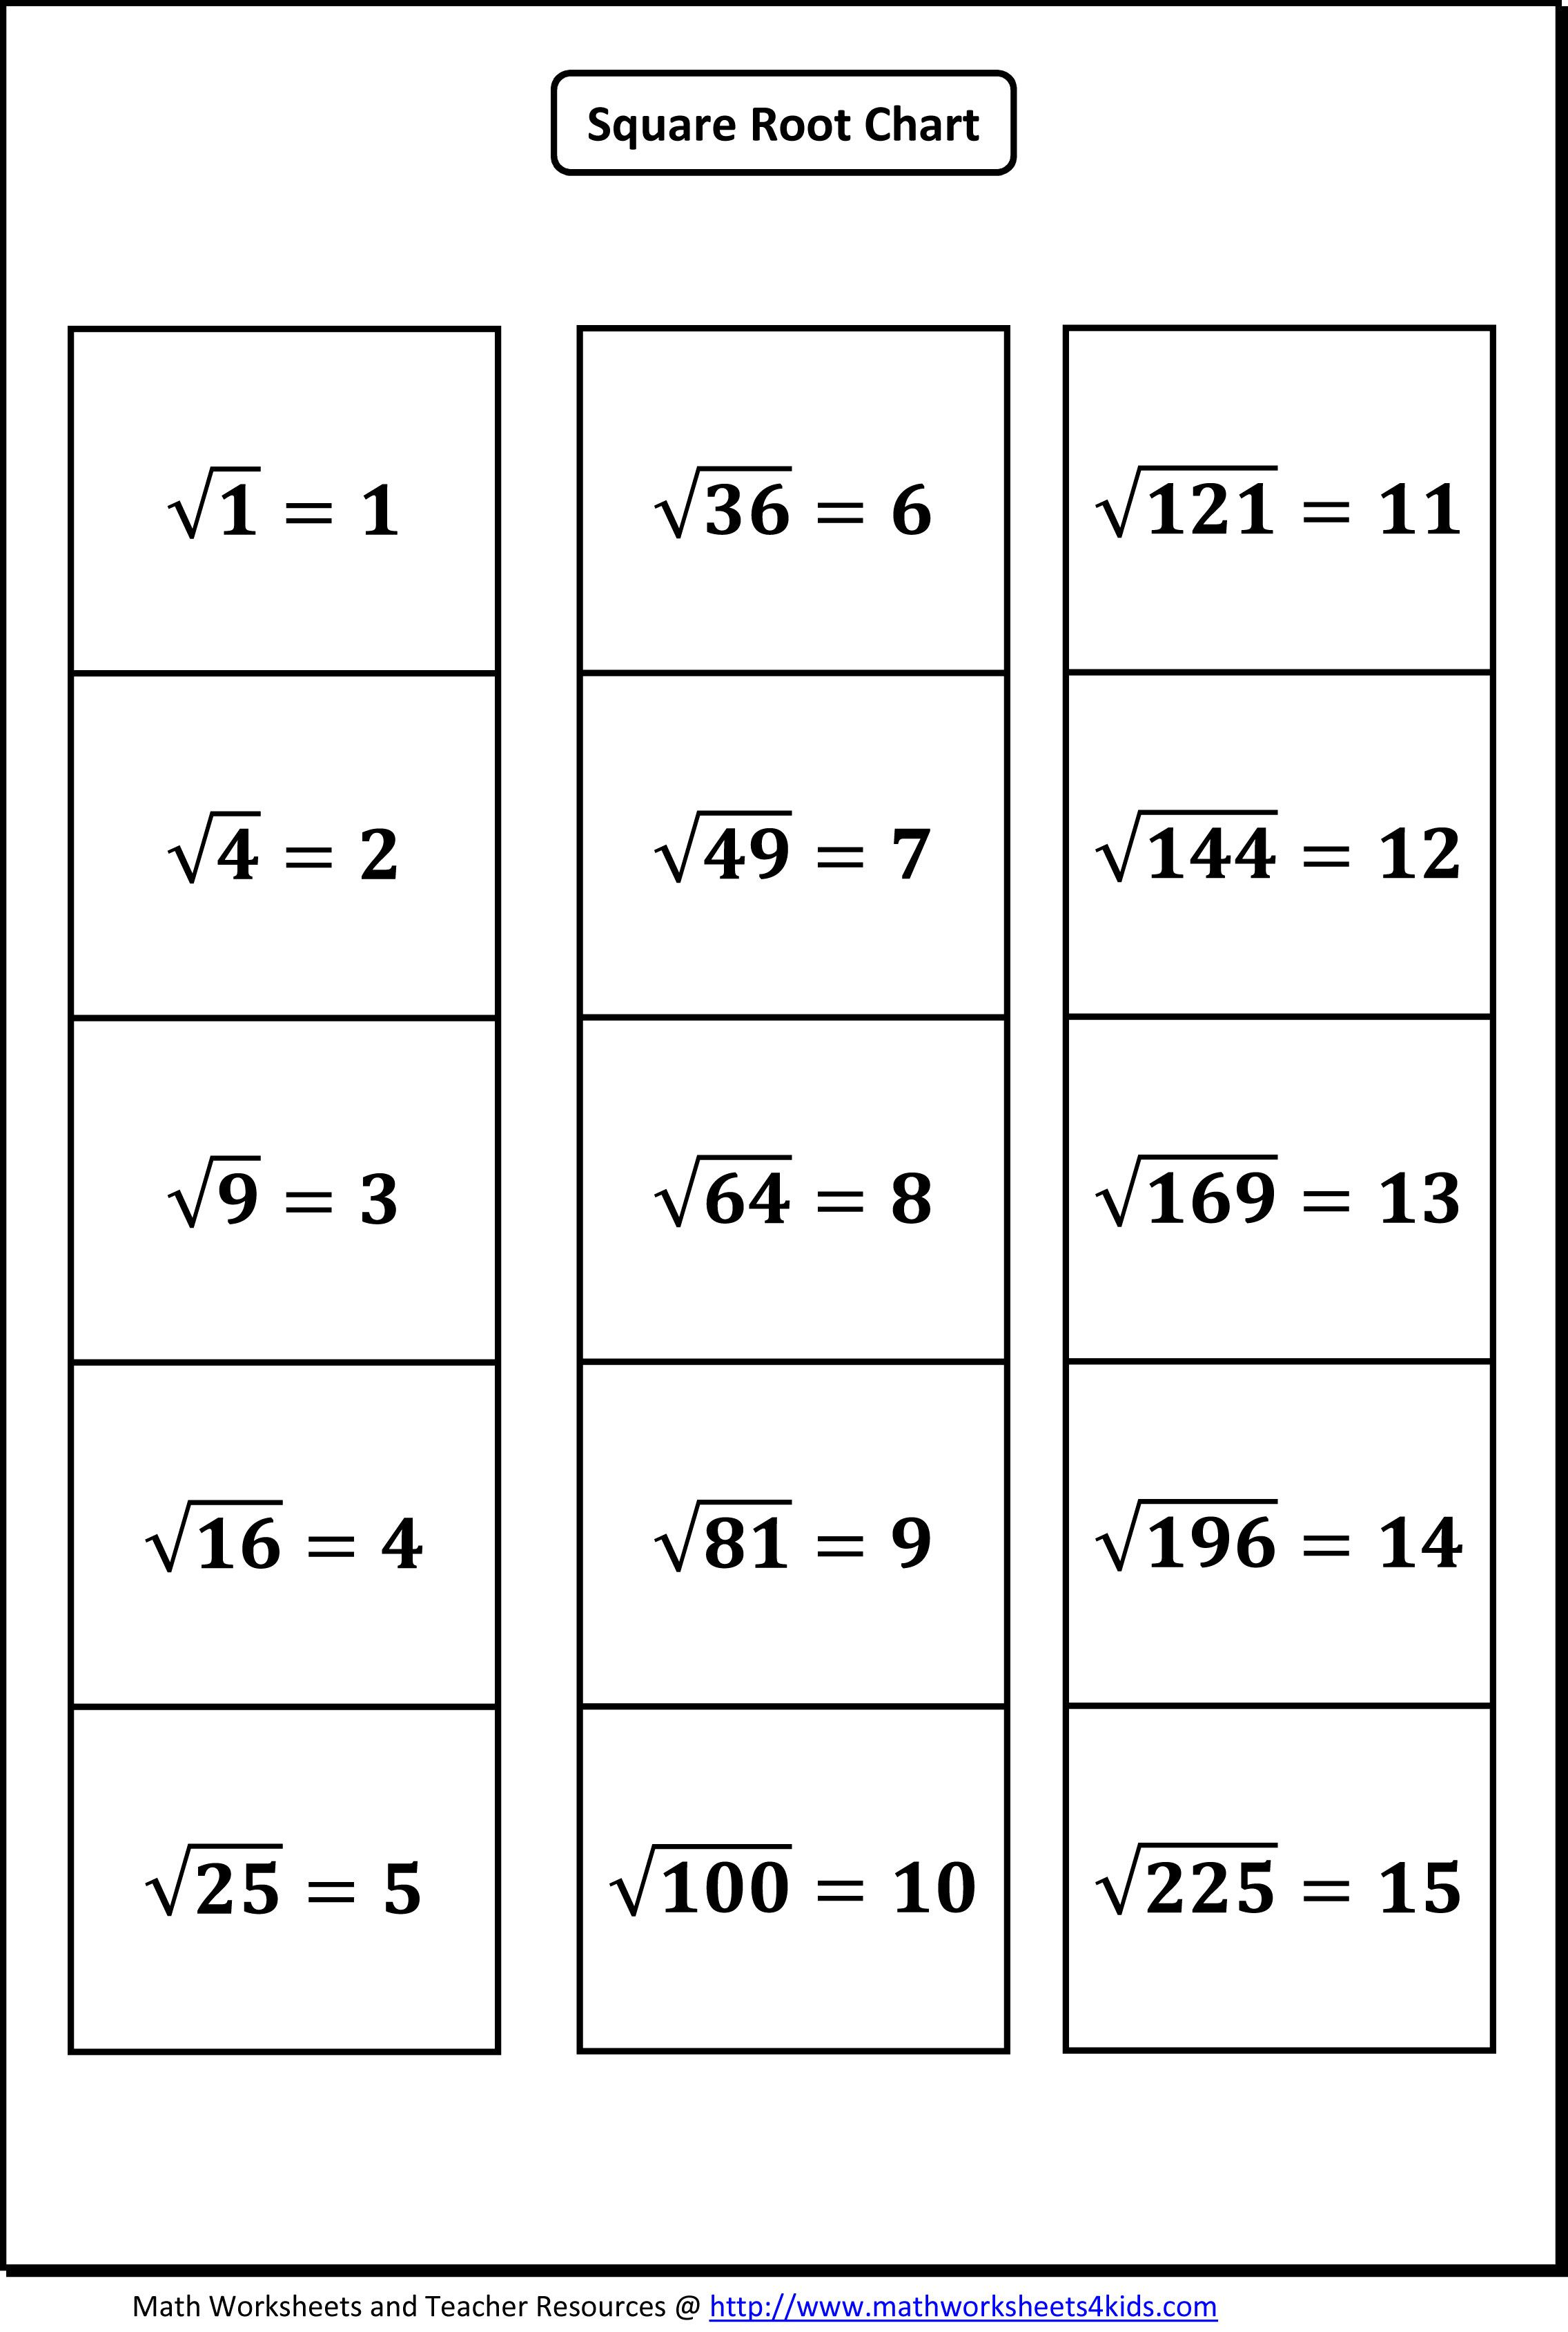 Square Root Worksheets Find The Square Root Of Whole Numbers